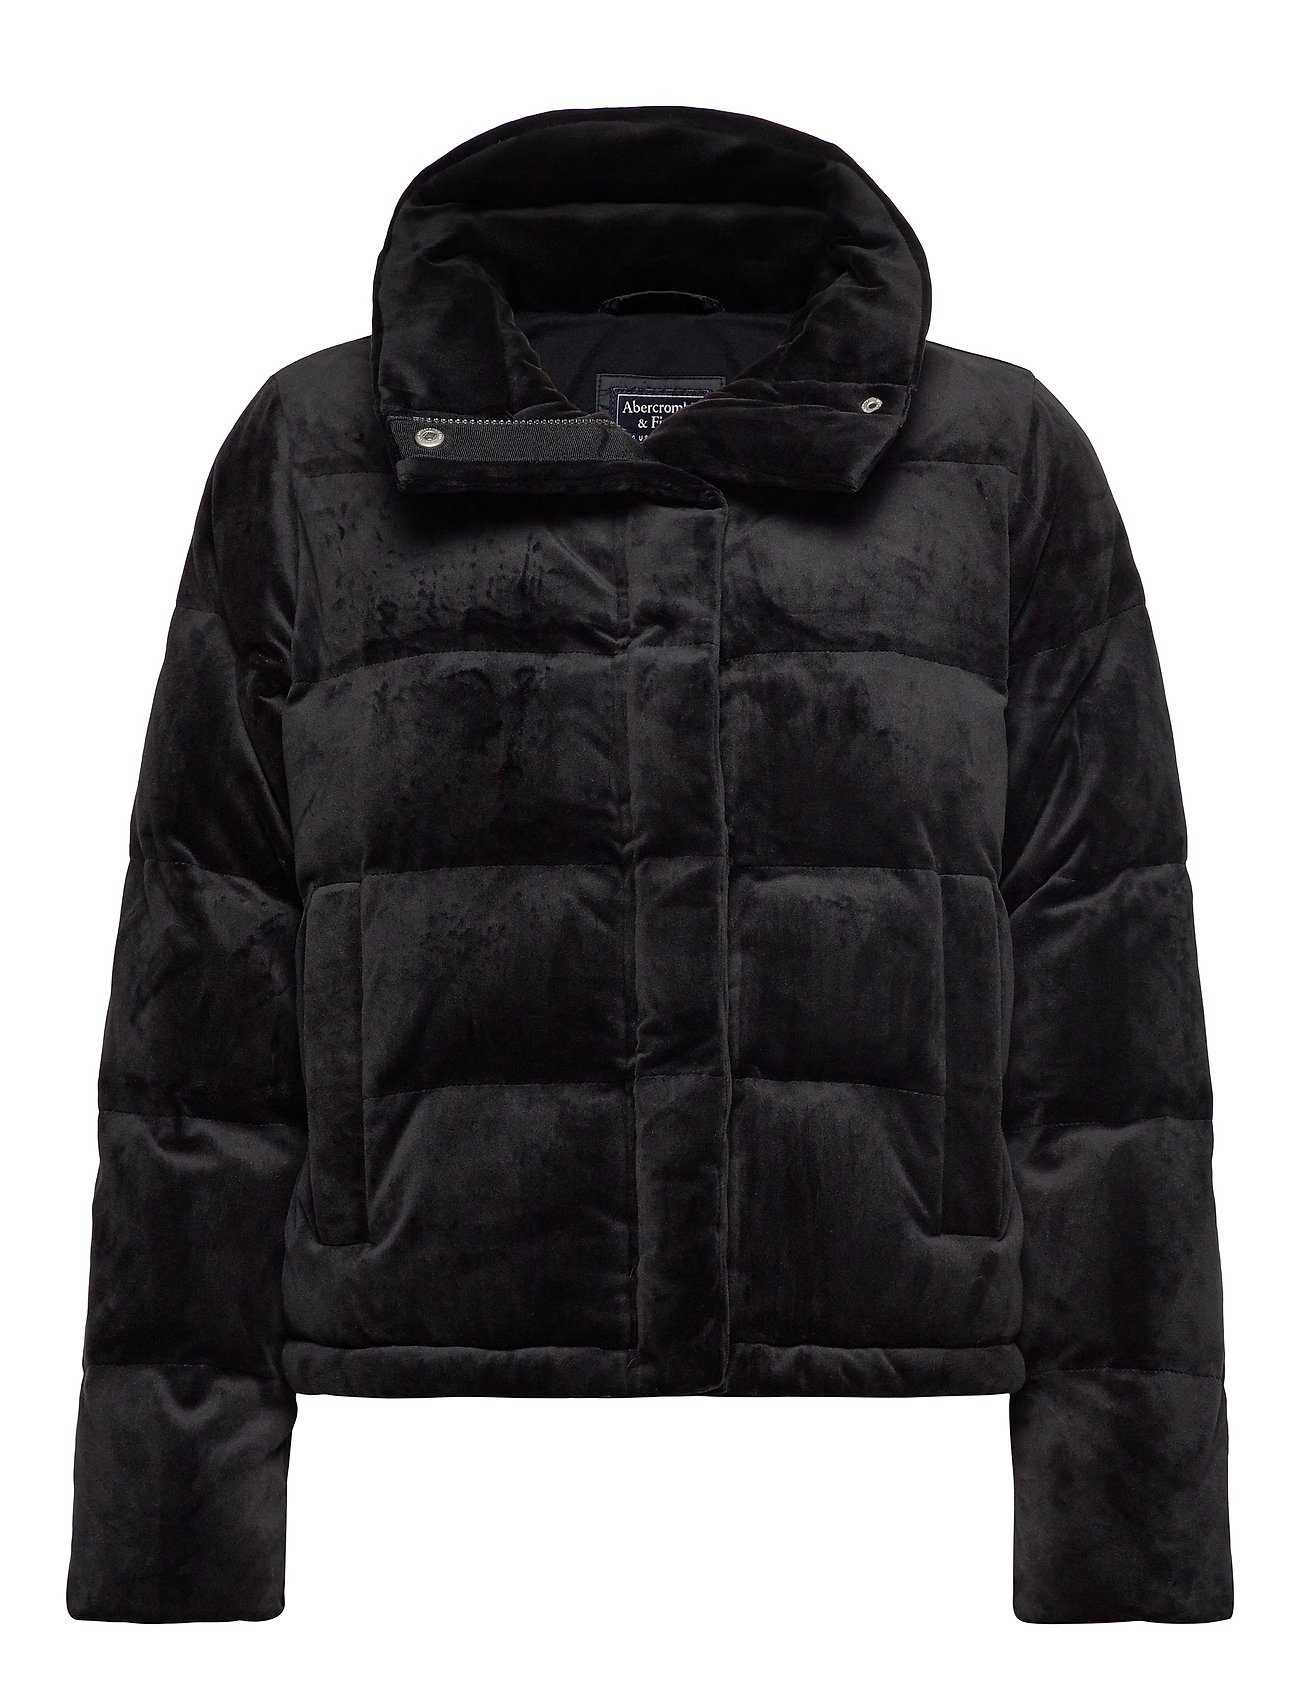 Abercrombie & Fitch Mini Puffer - BLACK SD/TEXTURE